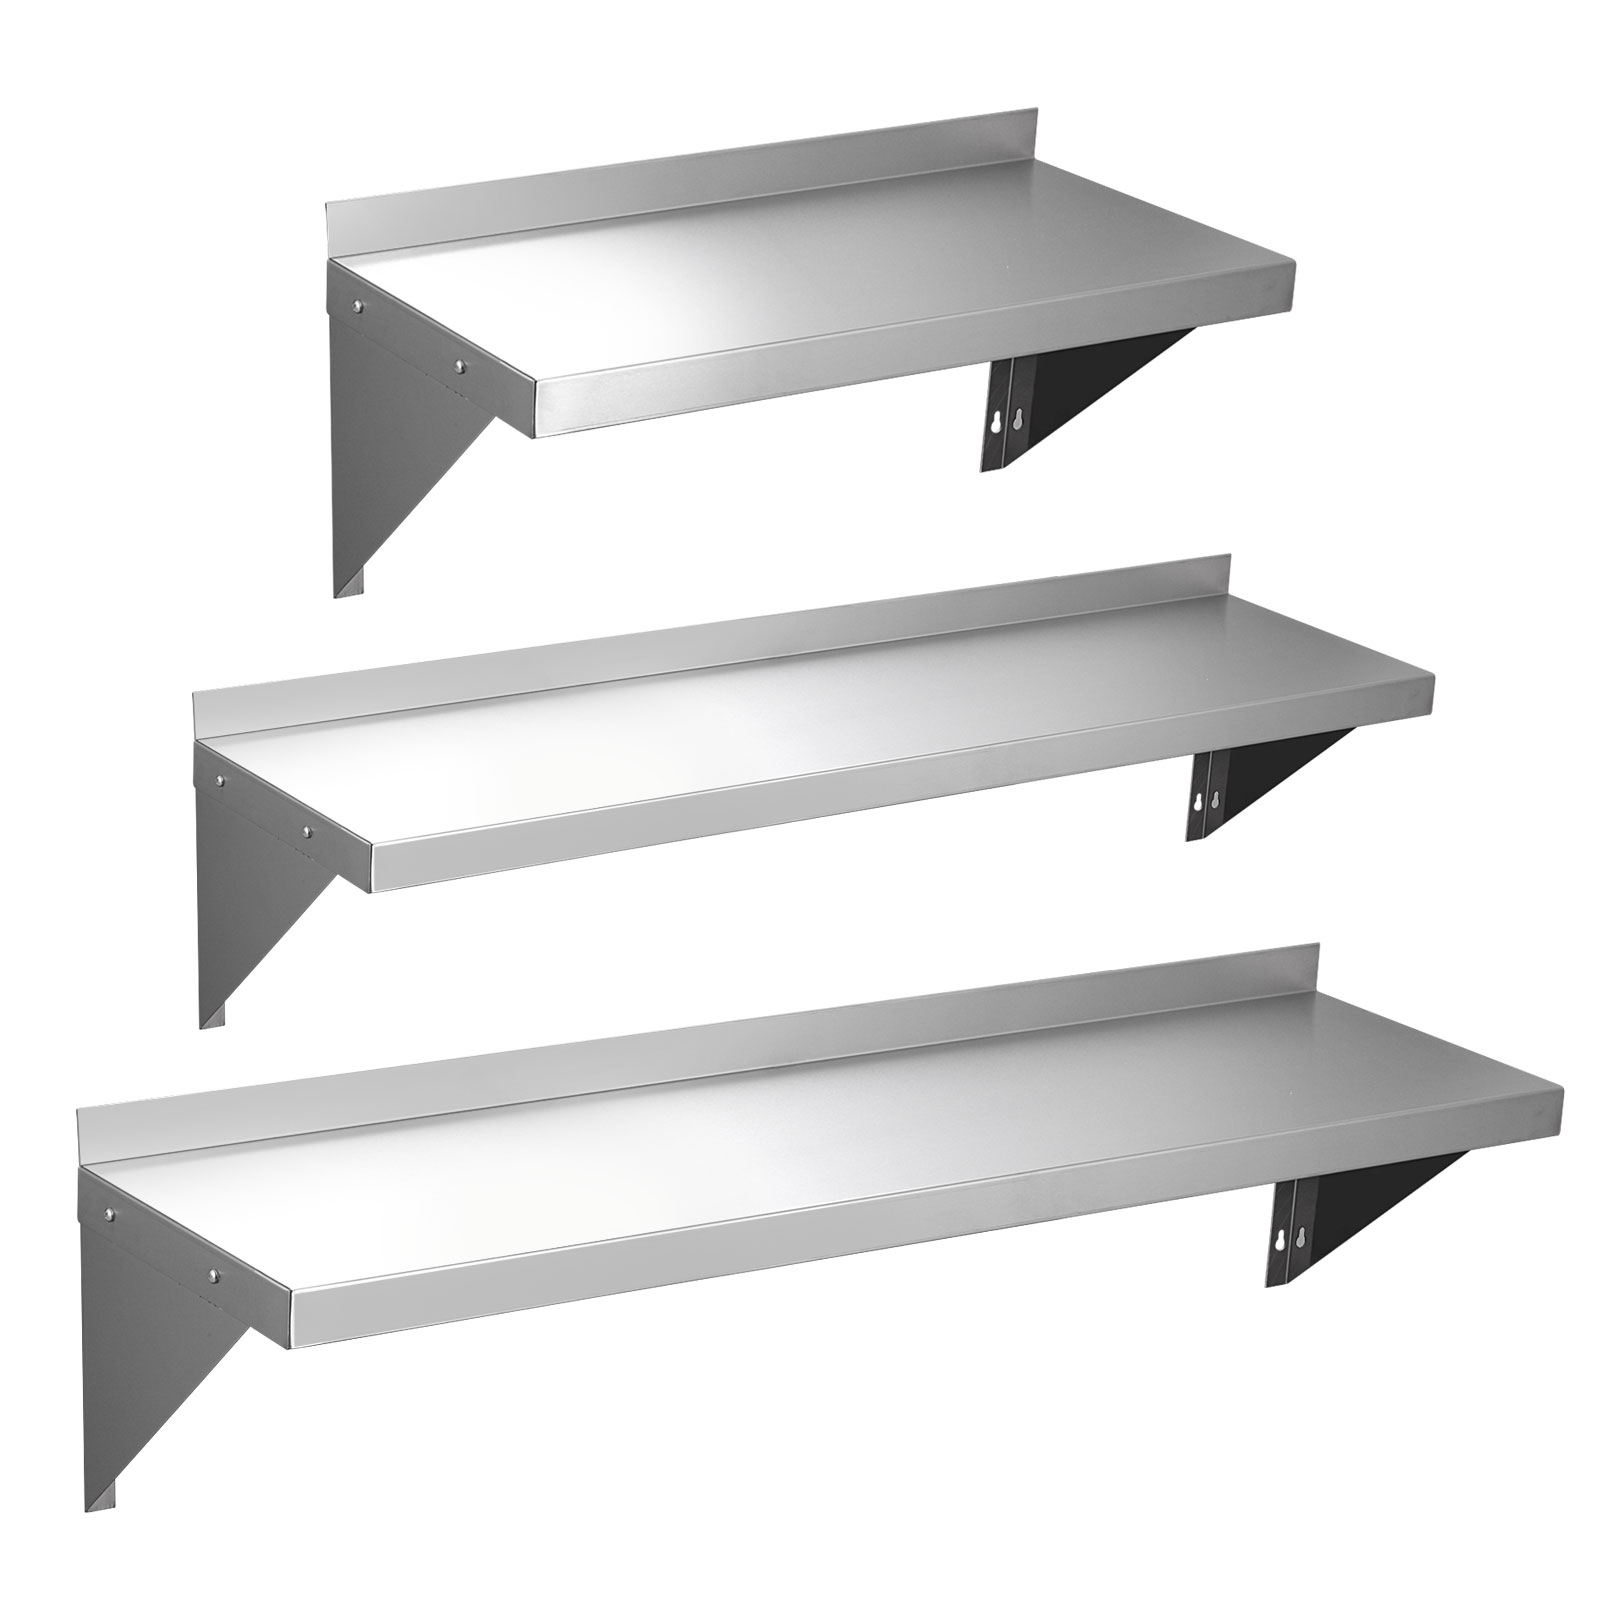 stainless steel kitchen shelf containers 600 900 1200mm commercial wall